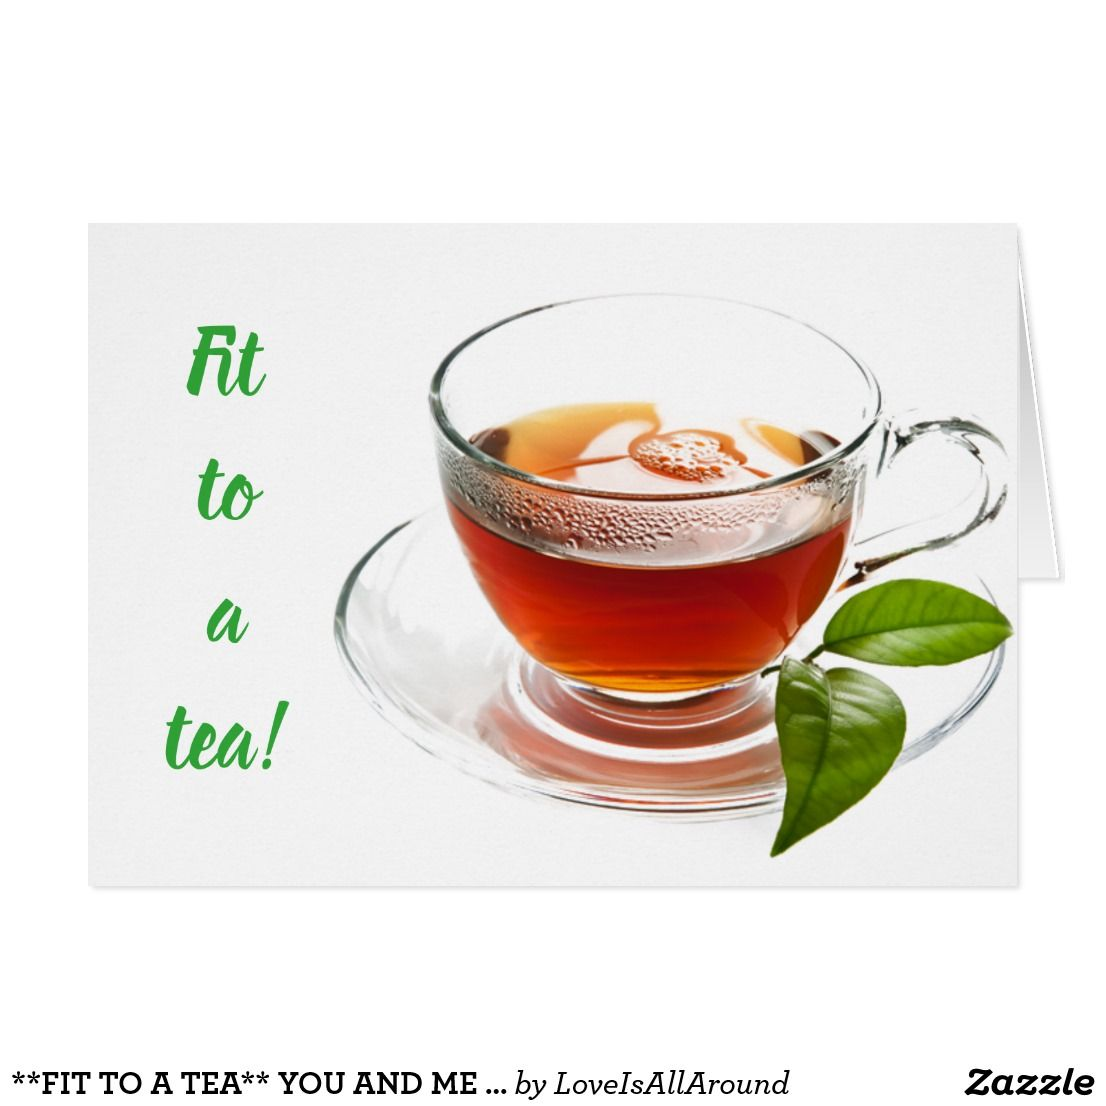 FIT TO A TEA** YOU AND ME LOVE FOR ANY REASON | Zazzle.com #sweetestdaygiftsforboyfriend